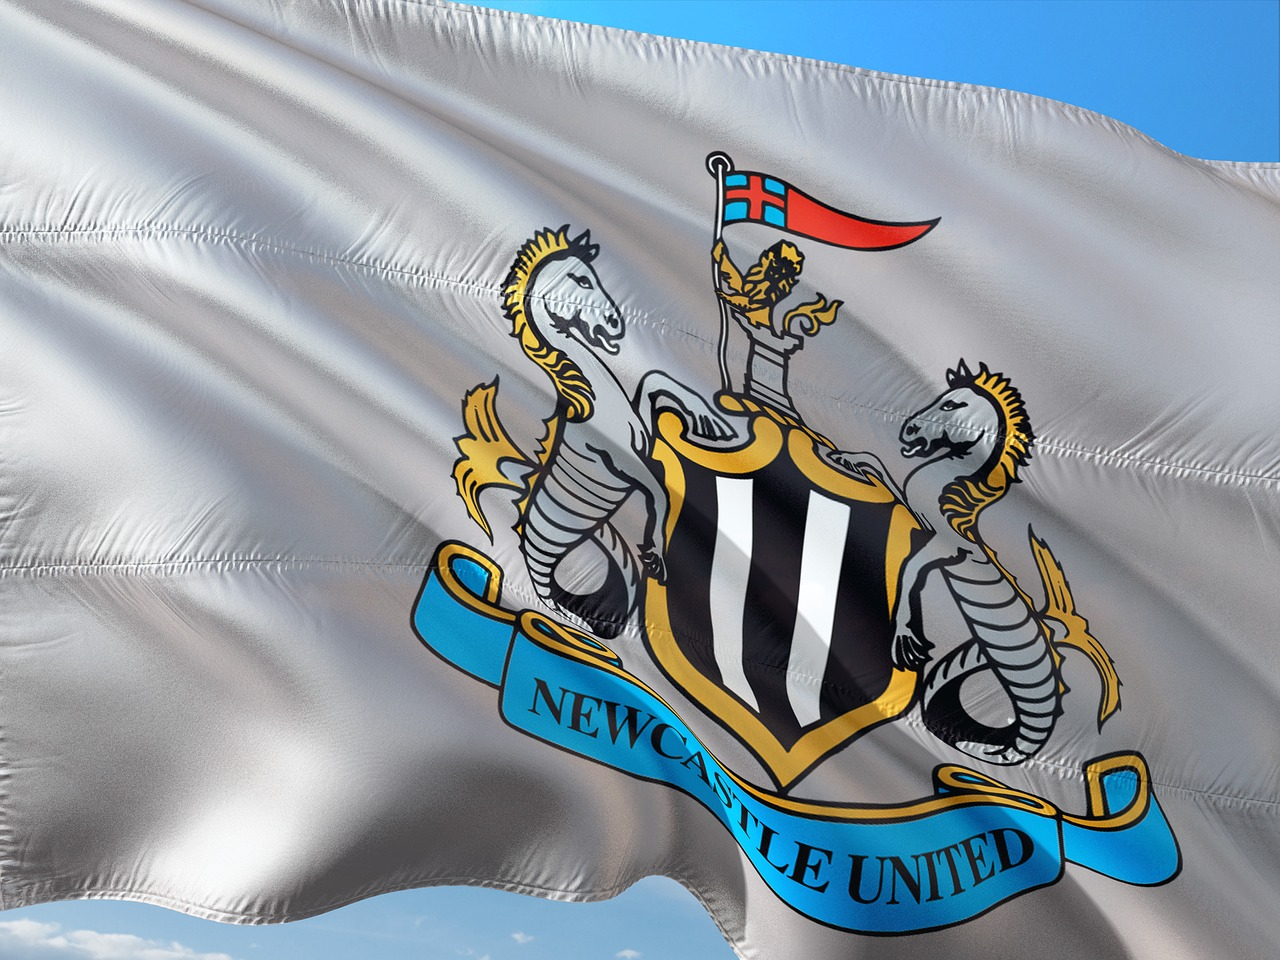 Newcastle United - Flag